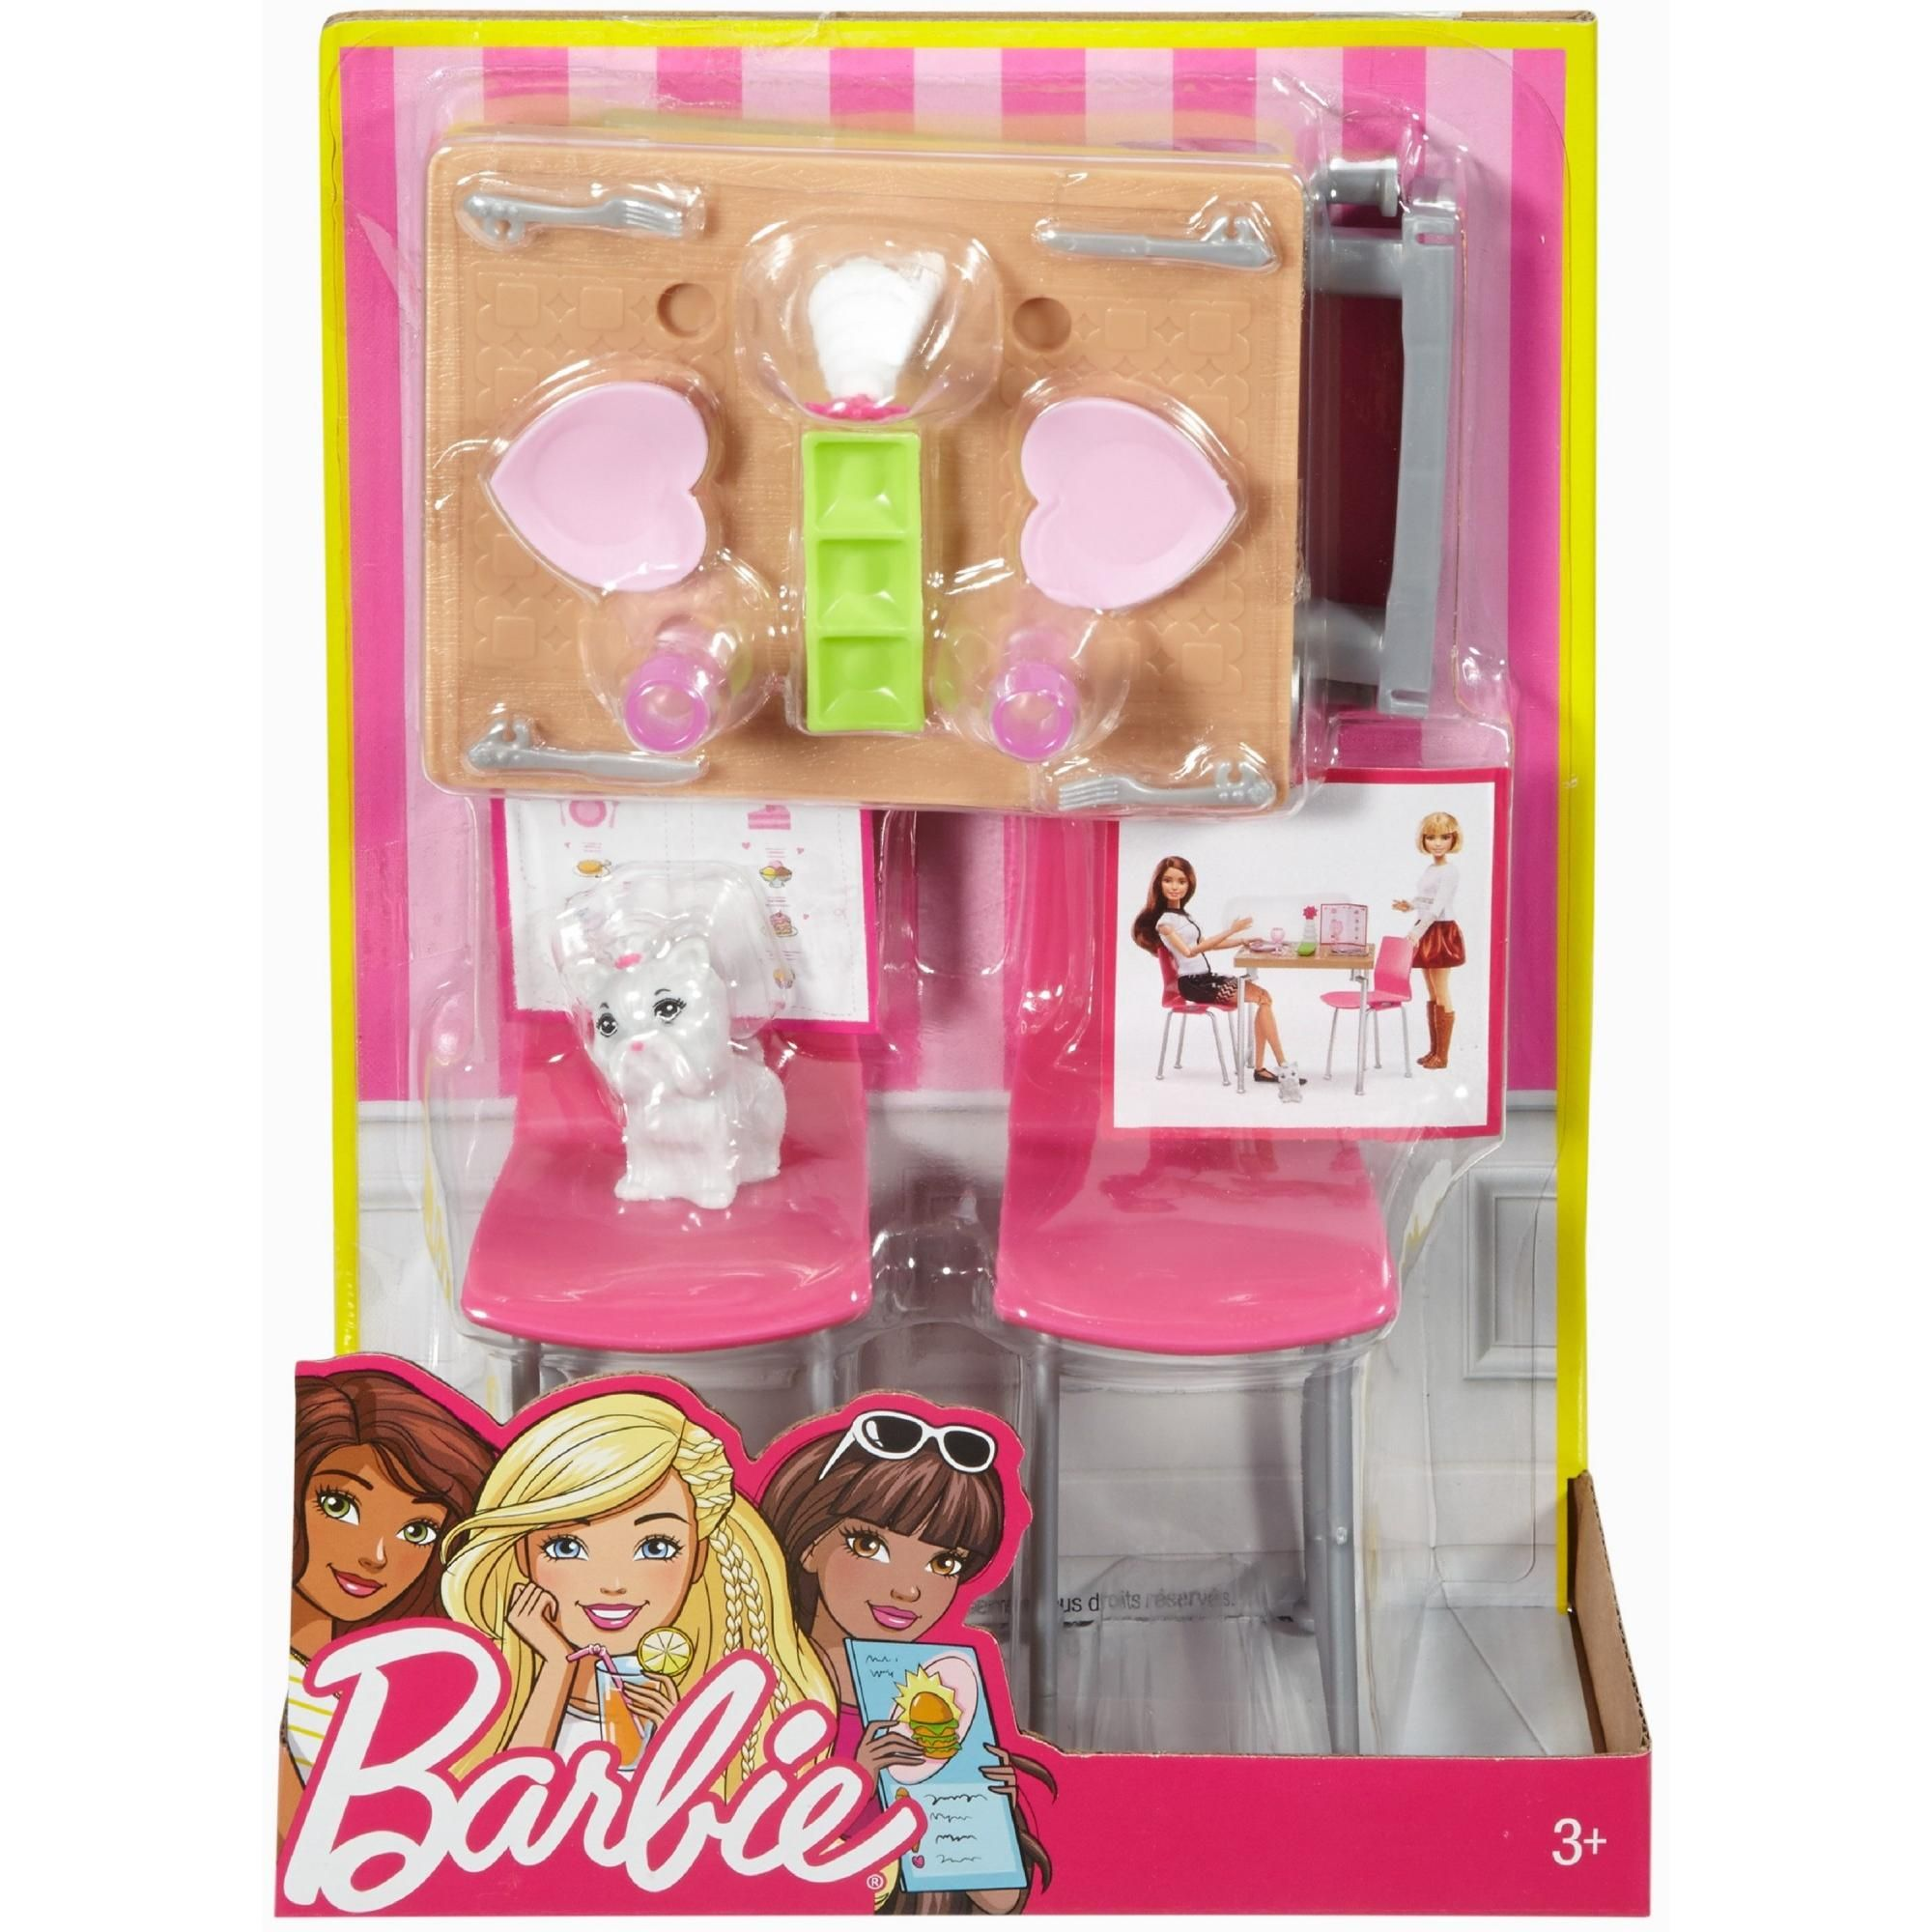 Barbie Furniture And Pet Set With Dining Table And Two Chairs Walmart Com Barbie Furniture Barbie Barbie Toys